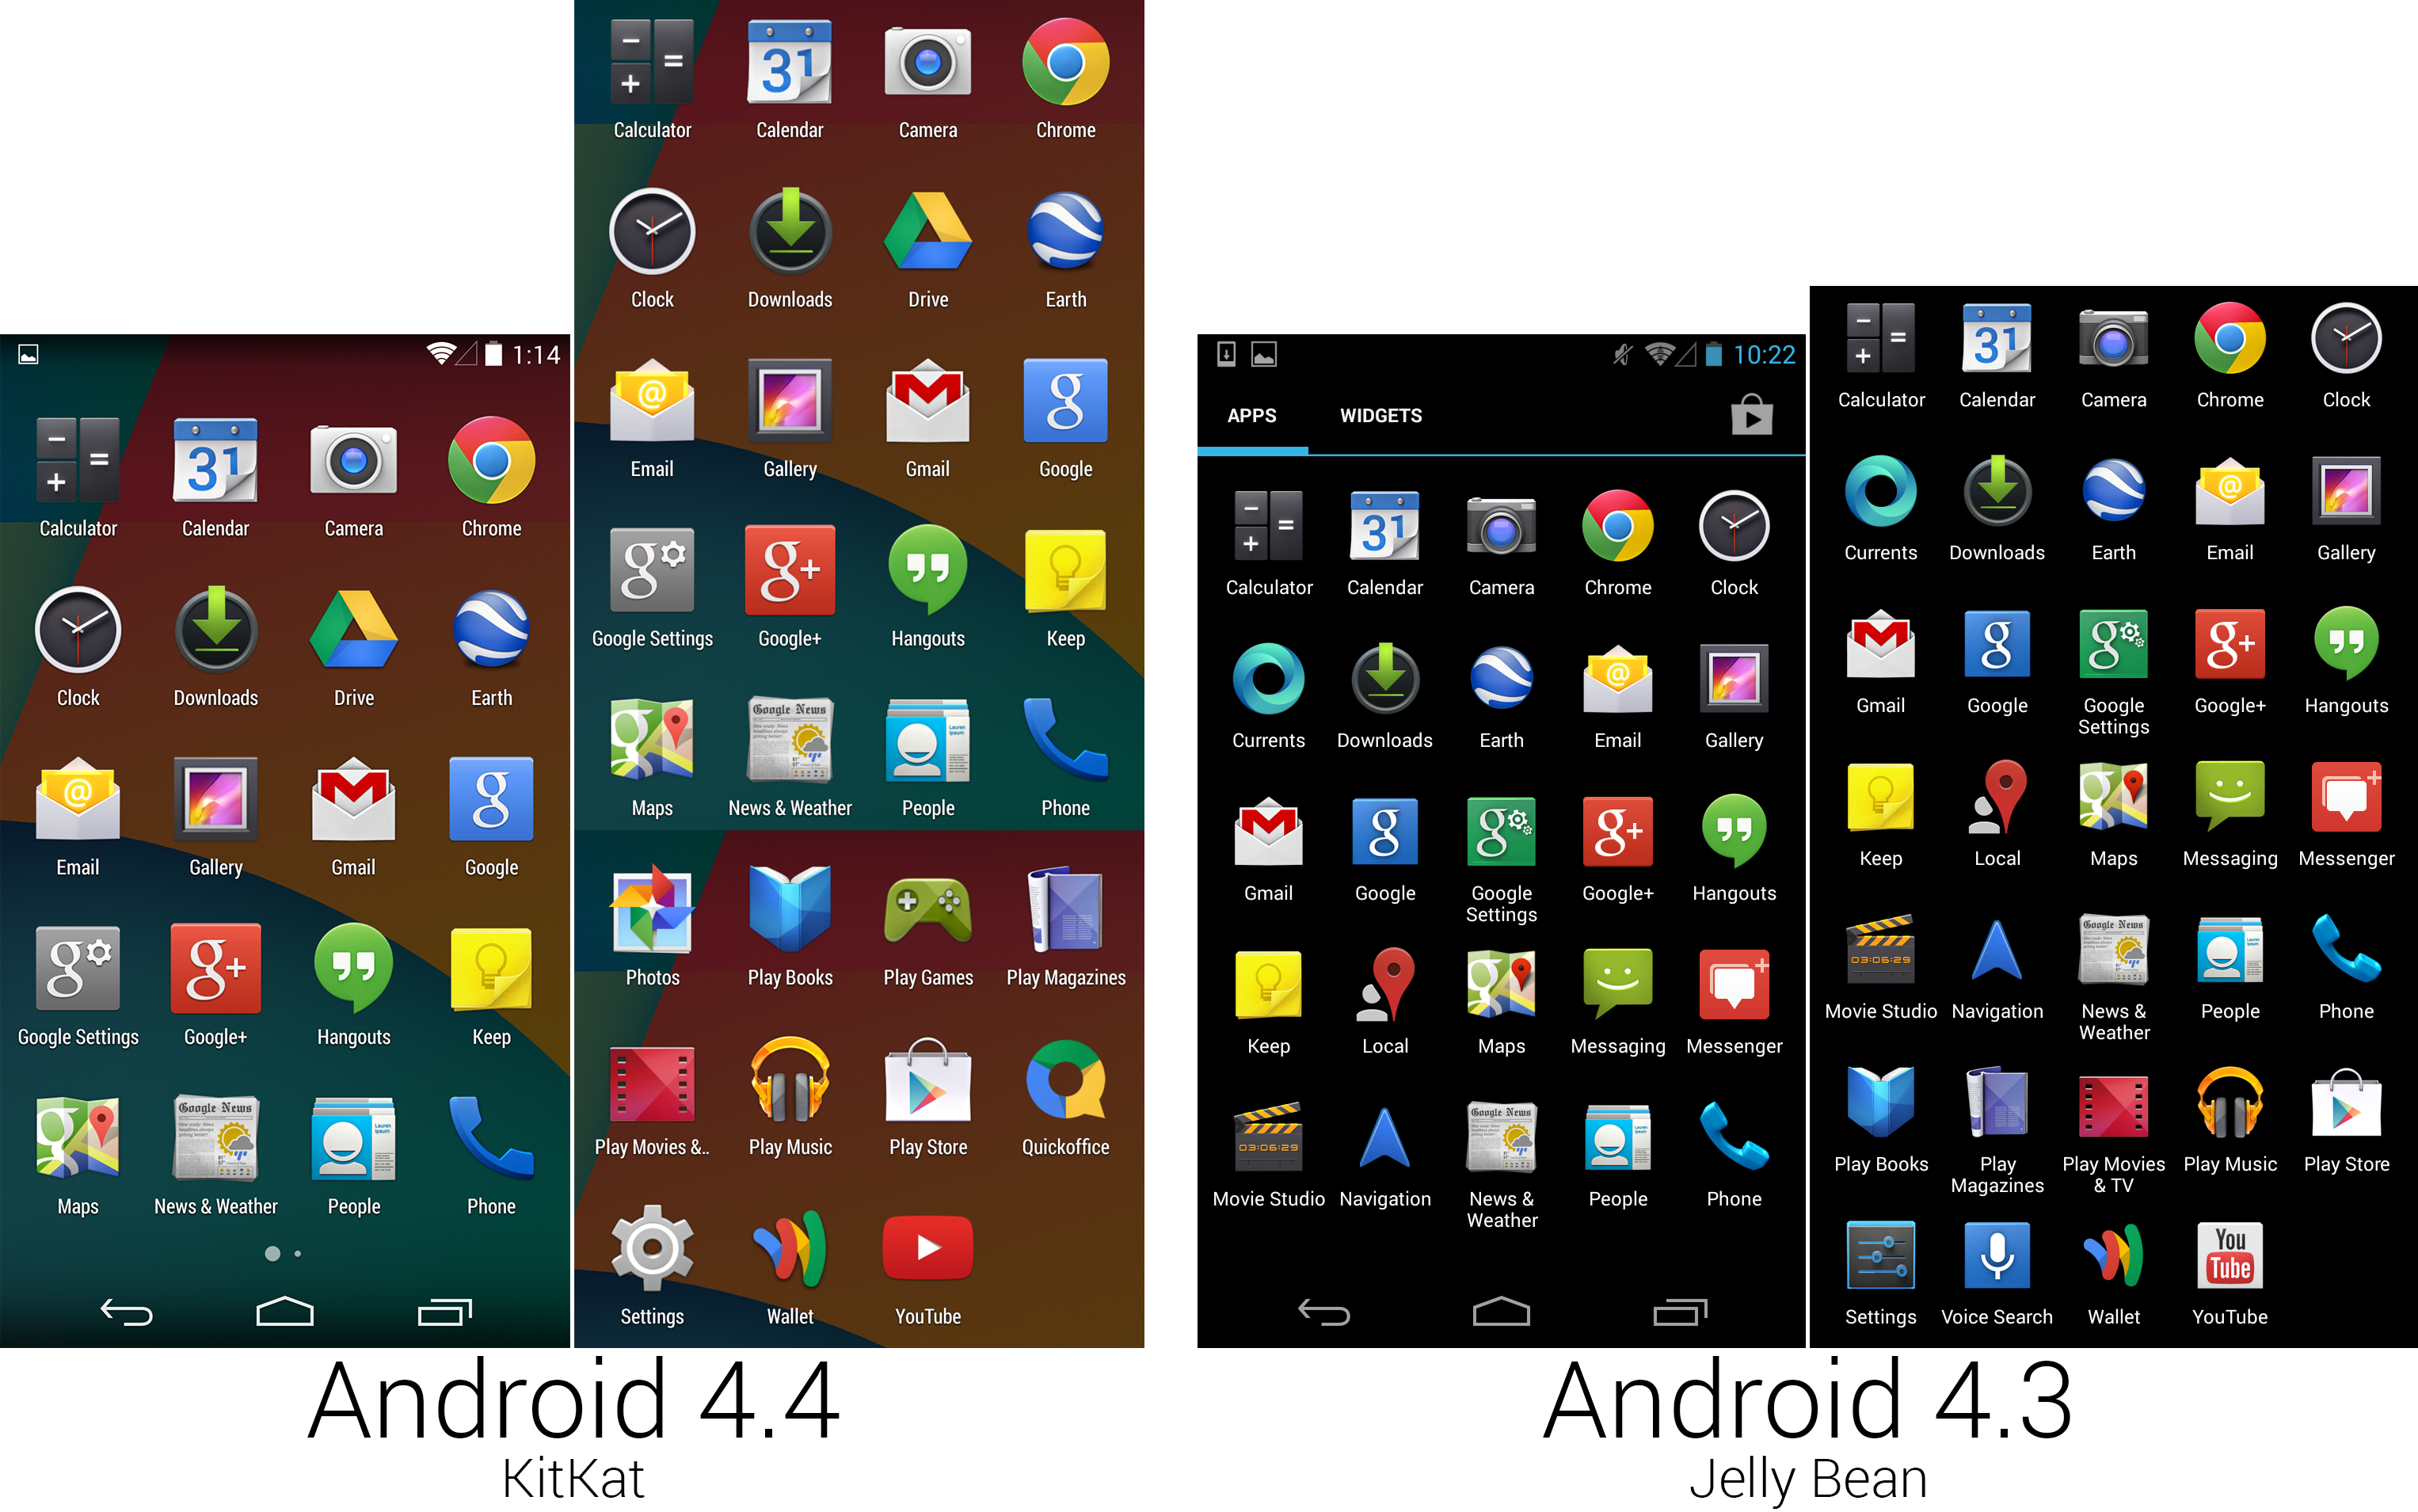 A screenshot showing the new, cleaner app screen layout, and a composite image of the app lineup.